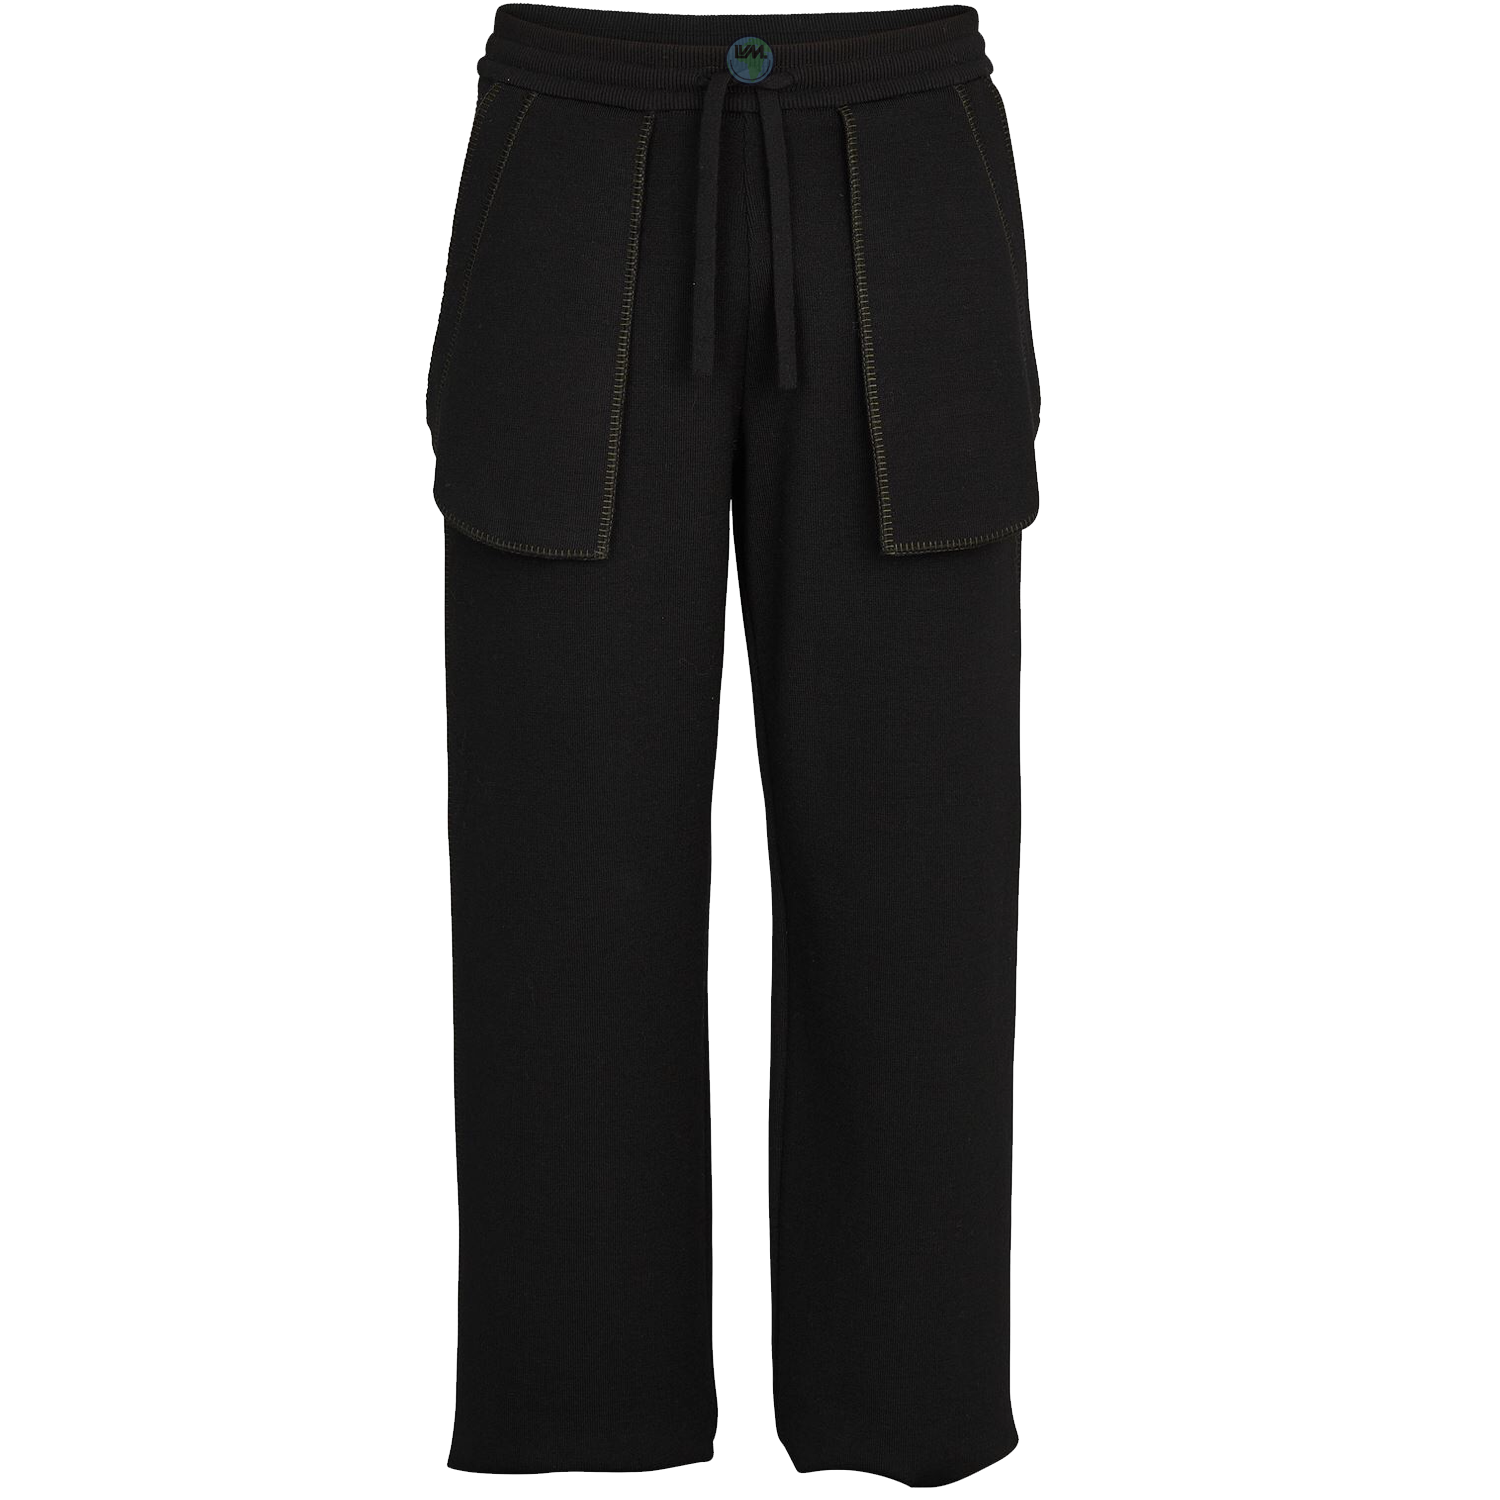 INSIDE OUT PANTS - €1500 $20001A5F12NOIR